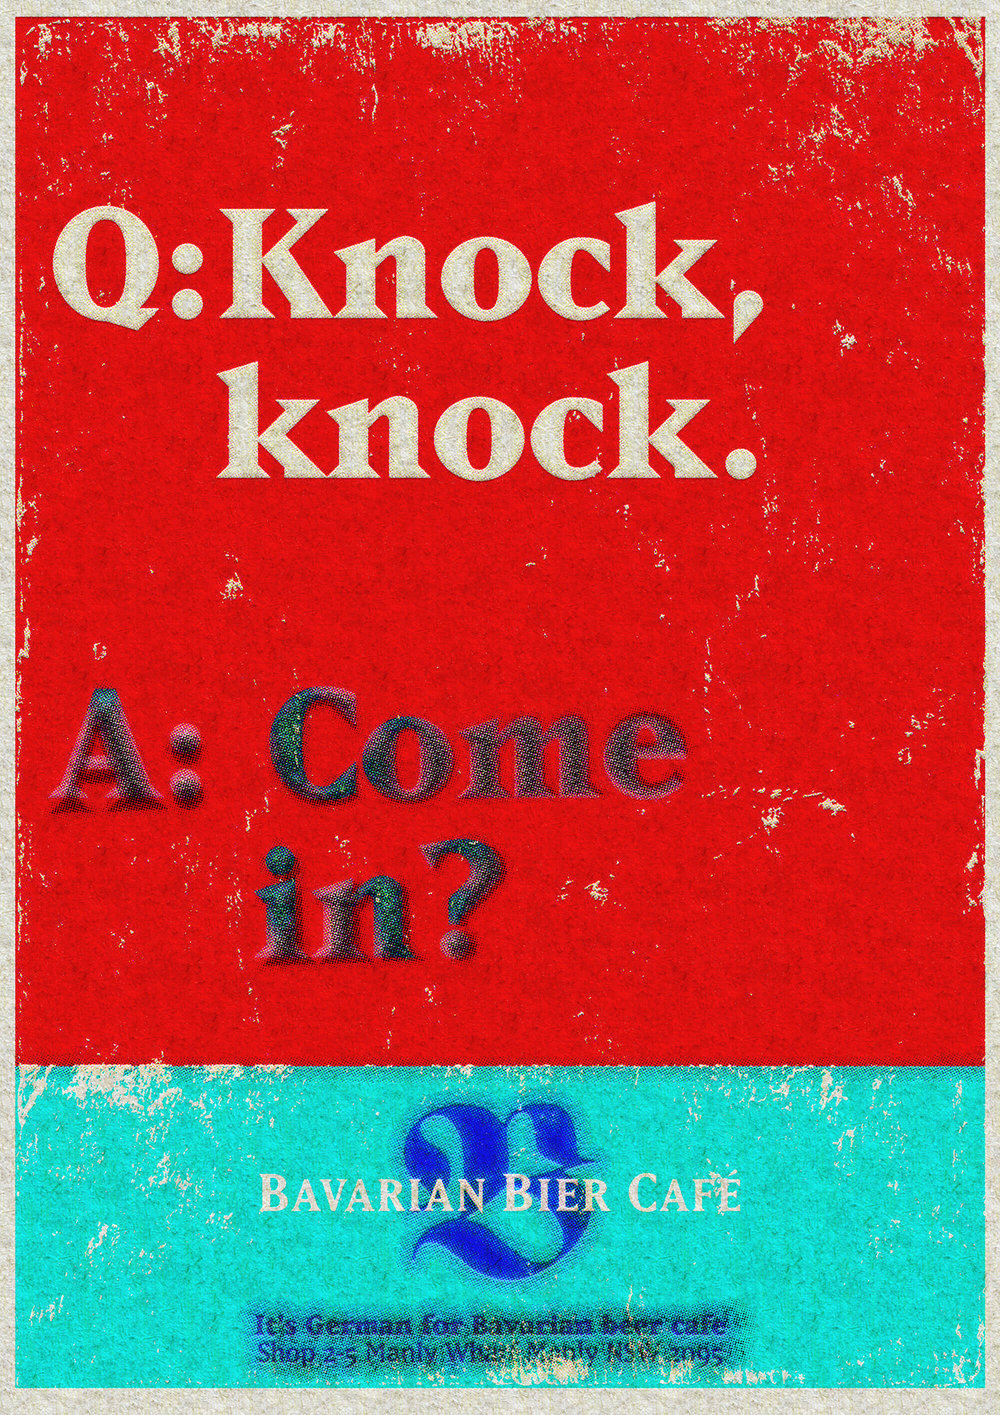 Bavarian Bier Café: print Ad. Knock, knock. Come in?